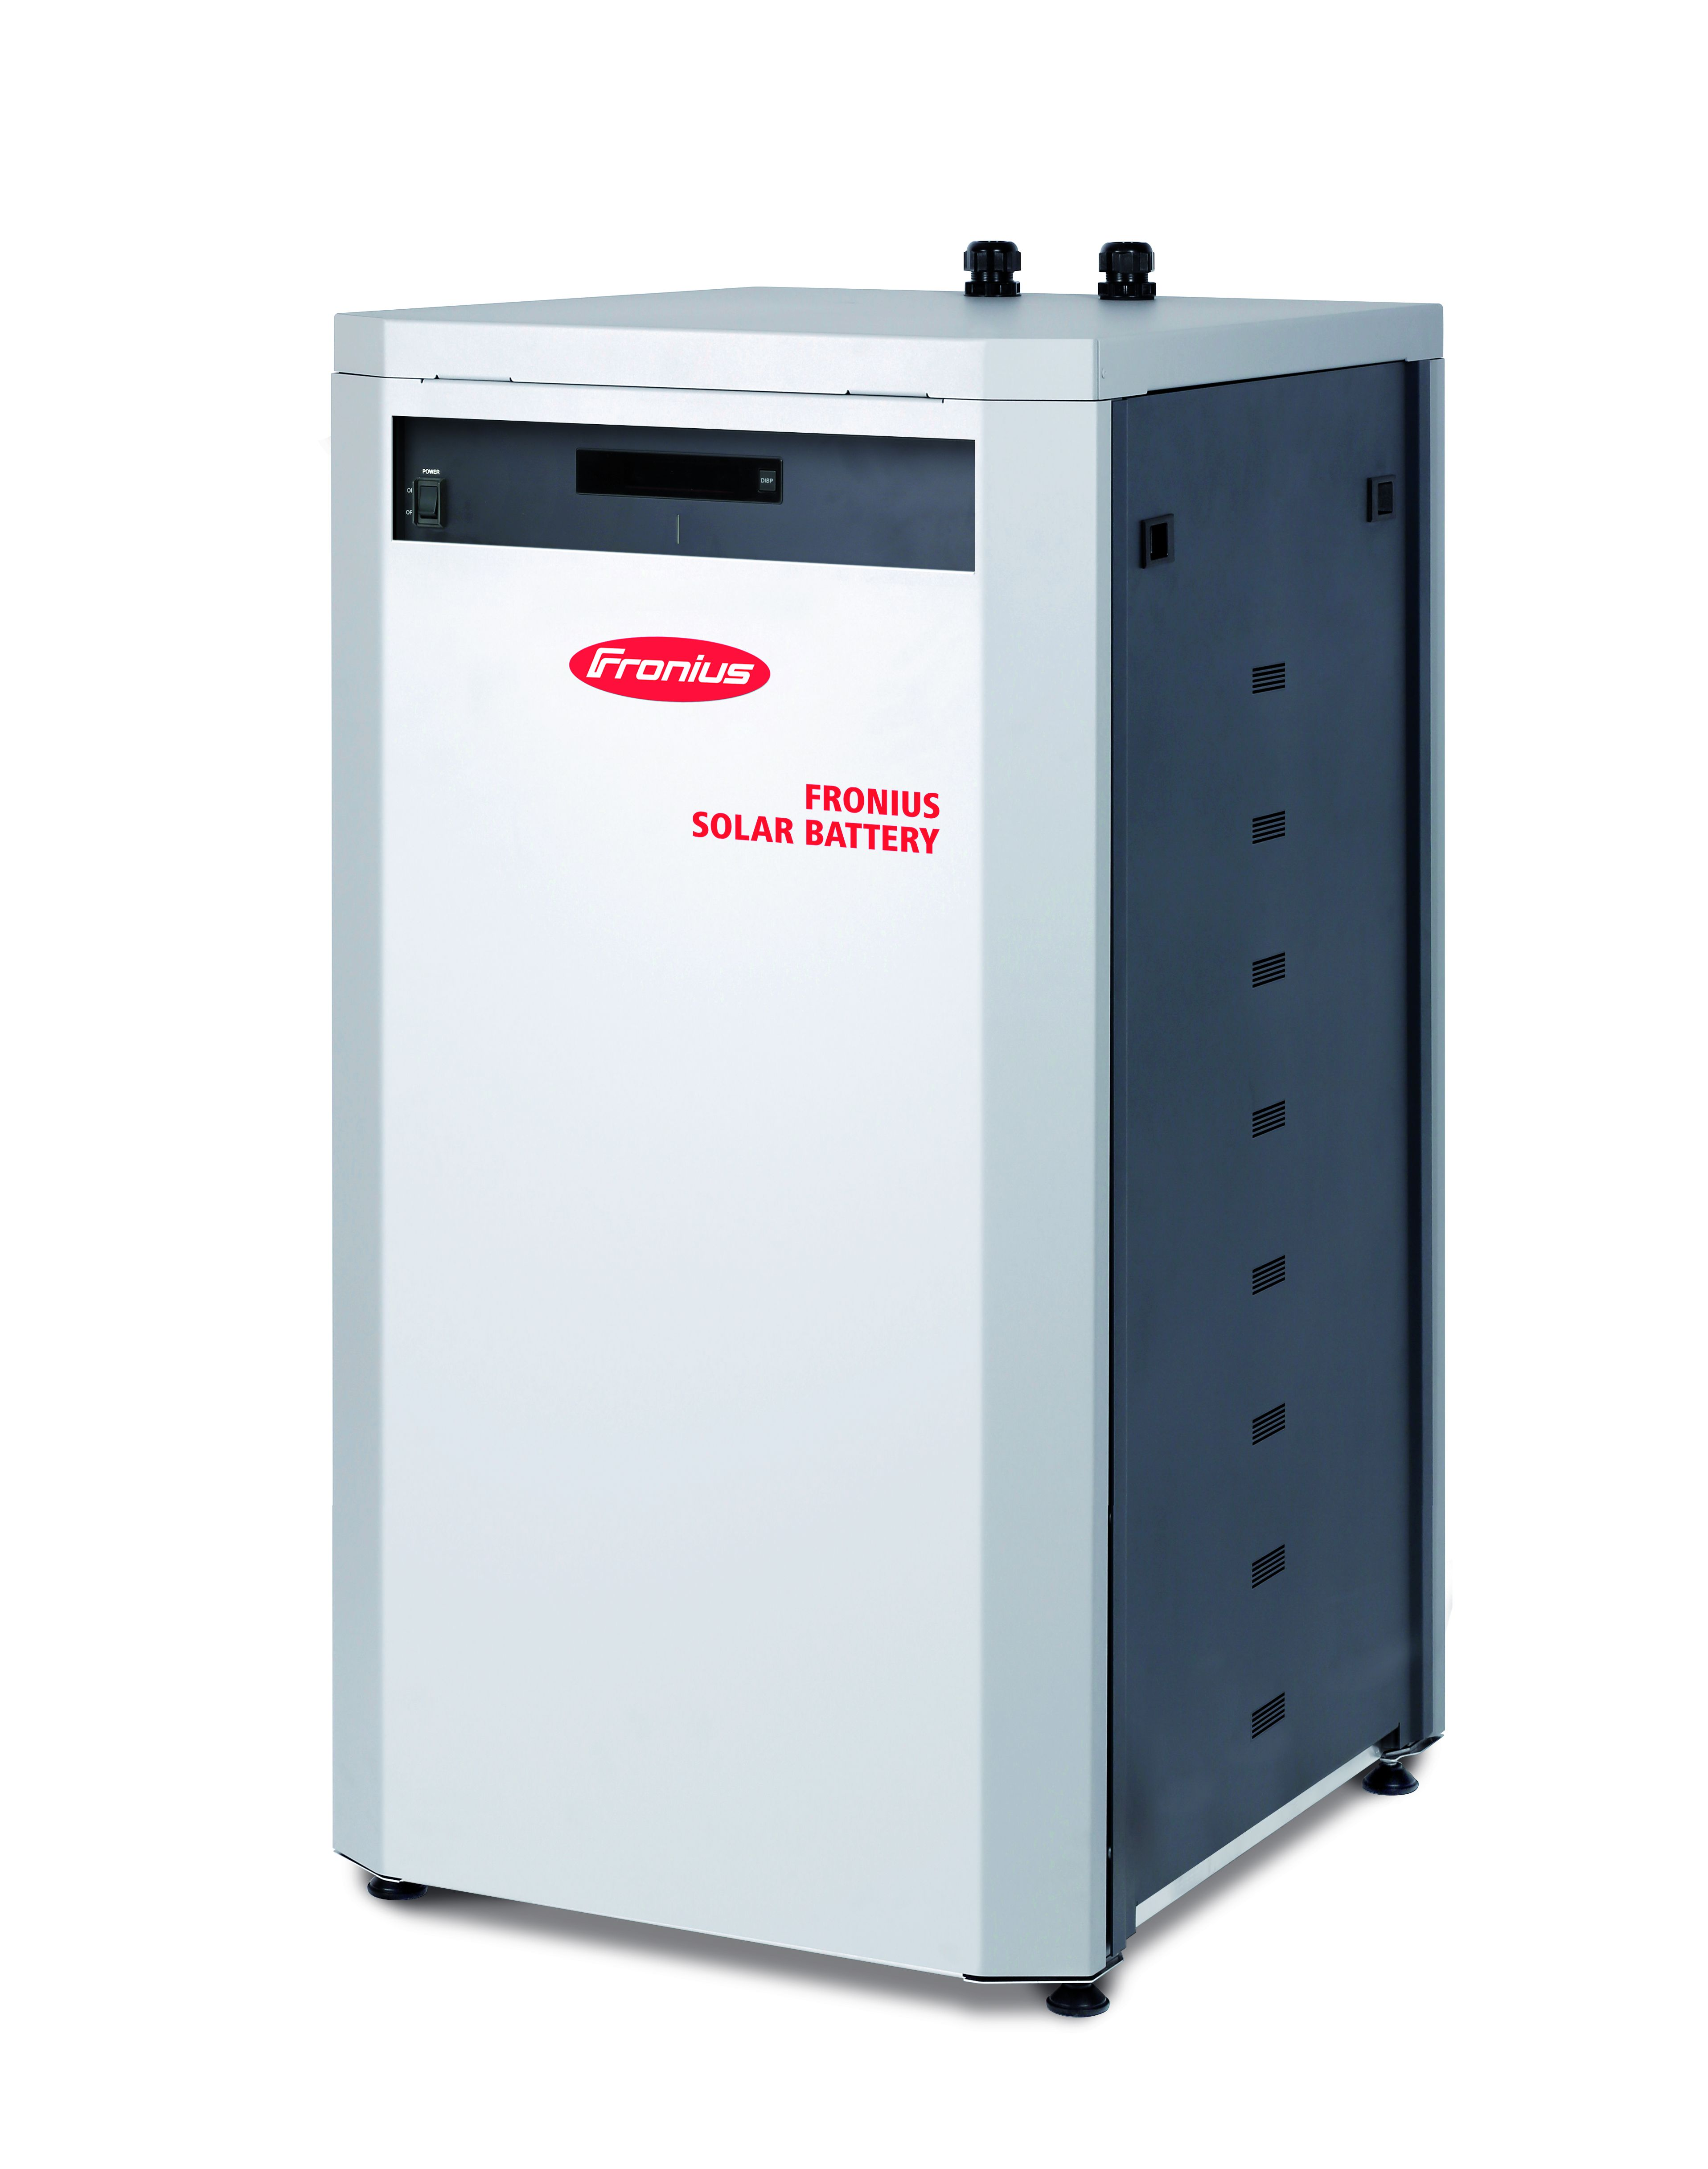 1 Stk Fronius Solar Battery 6.0 (4,8 kWh nutzbar) PVH10060--